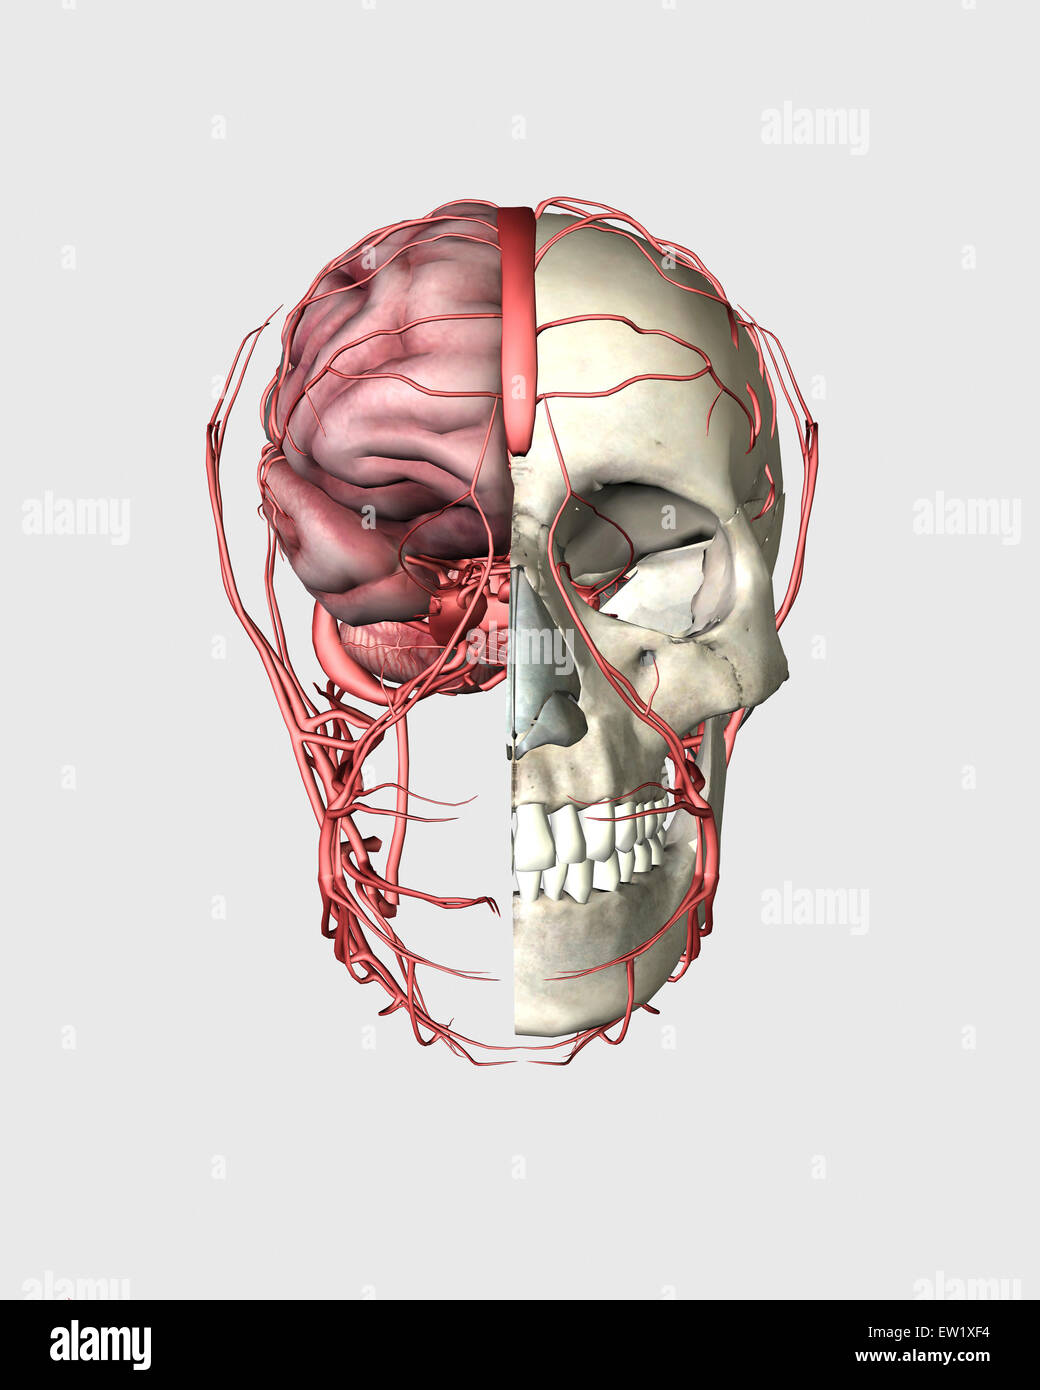 Transectional view of human skull showing half brain with veins. - Stock Image